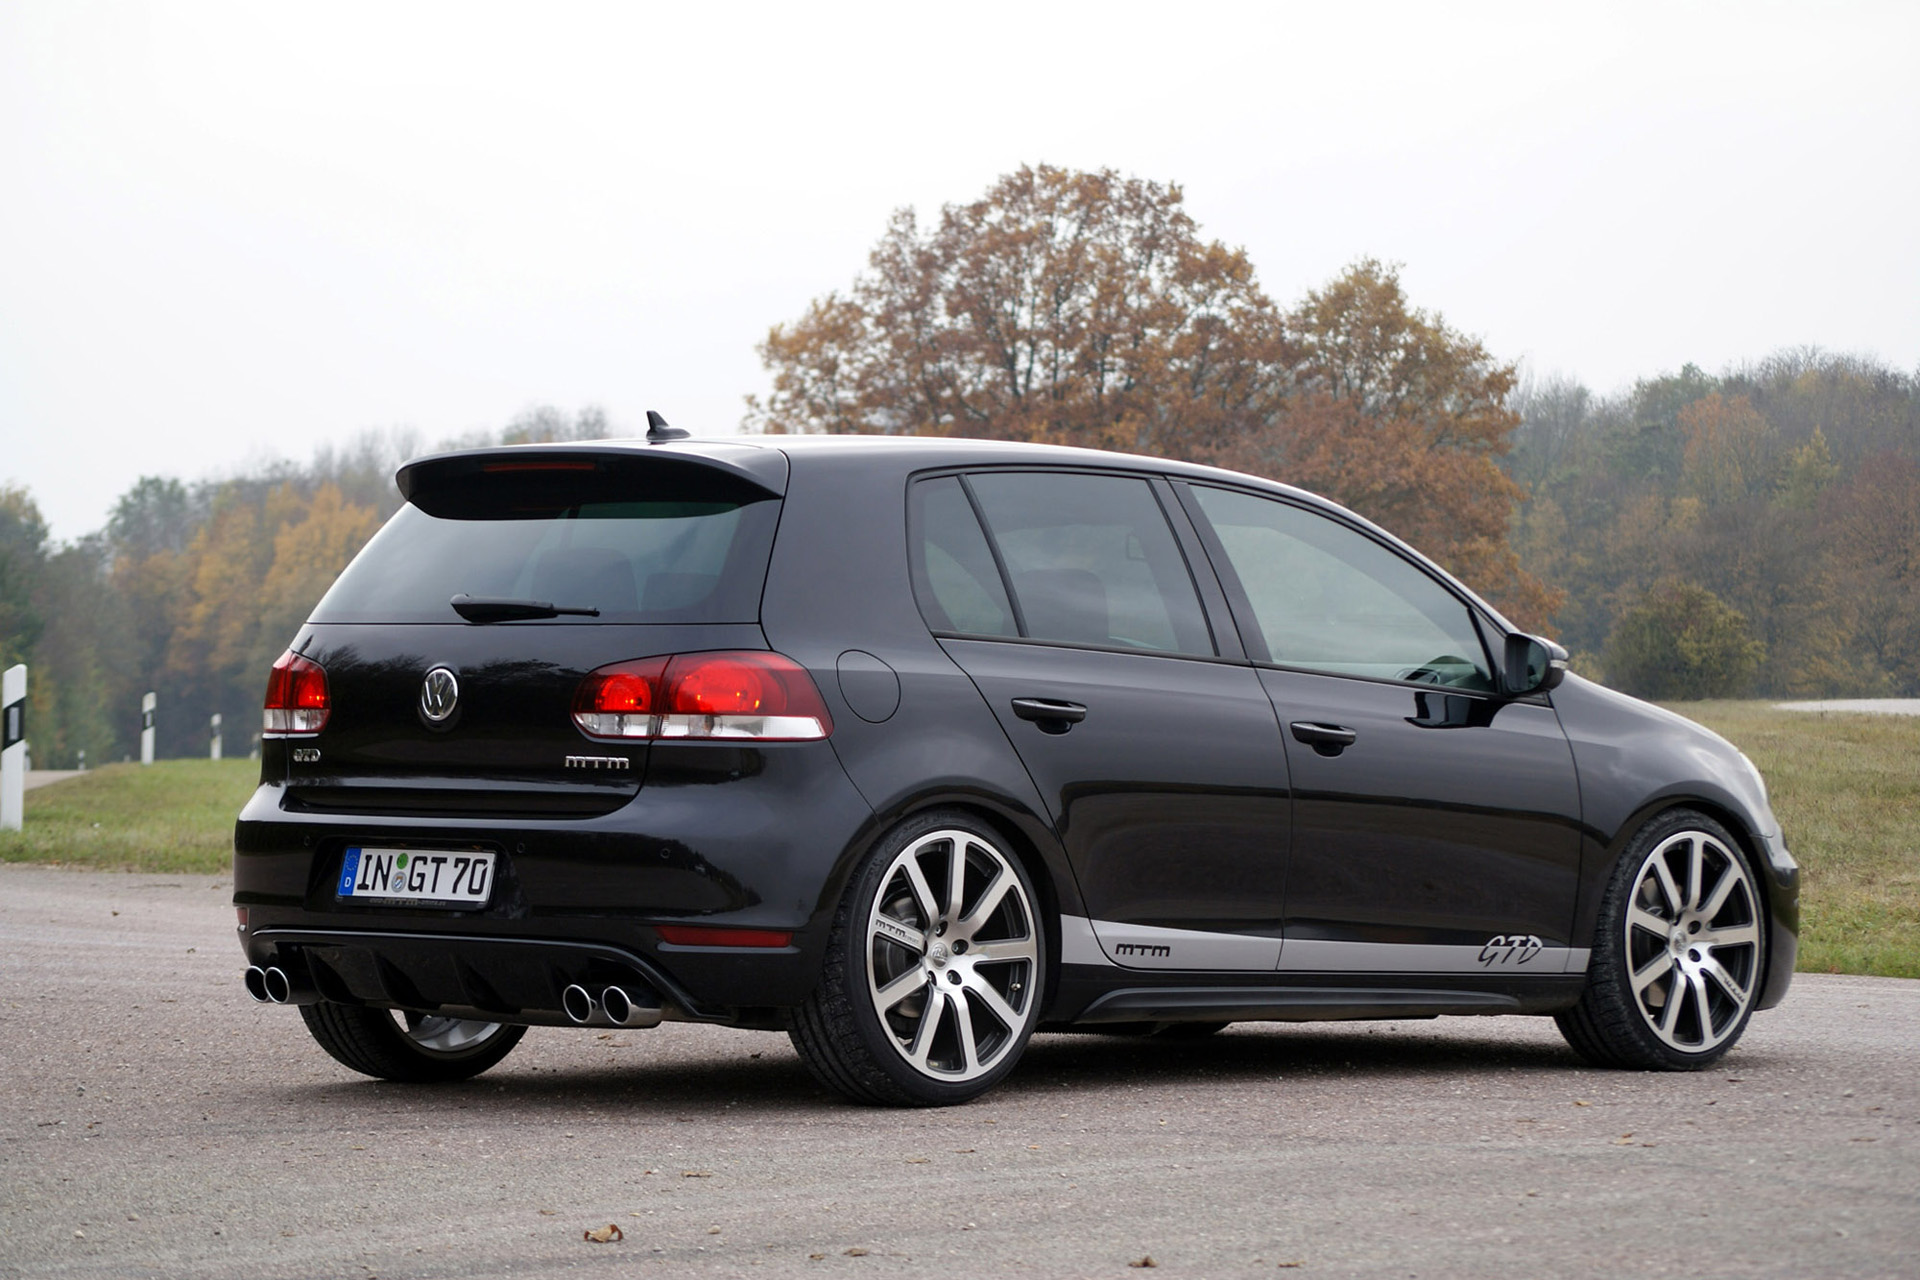 Vw Golf Gtd Technical Details History Photos On Better